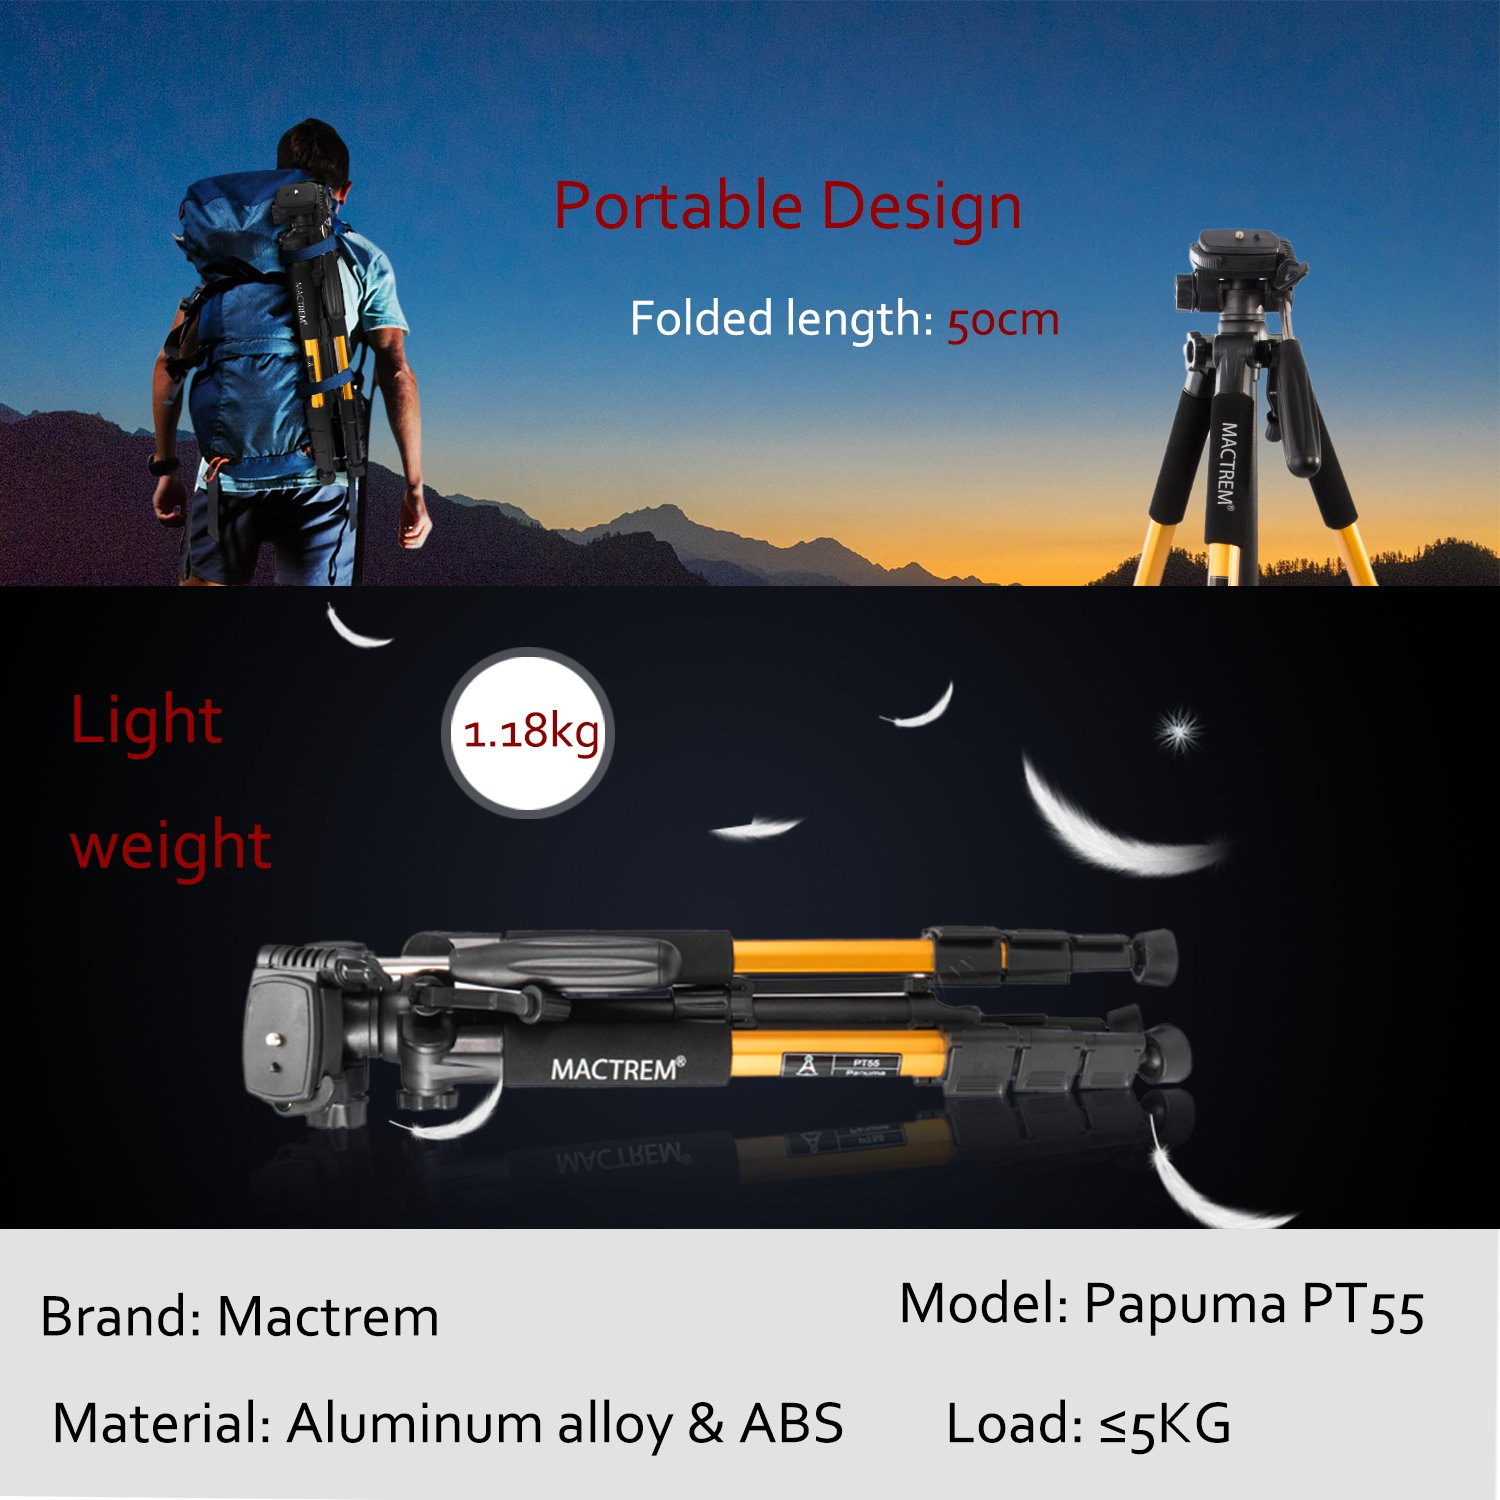 Camera Tripod Lightweight Portable Travel Tripod Aluminum Camcorder Stand MACTREM 55-Inch with Bag for DSLR Nikon Canon Sony Olympus Fuji Pentax Lumix DV Video (Gold)